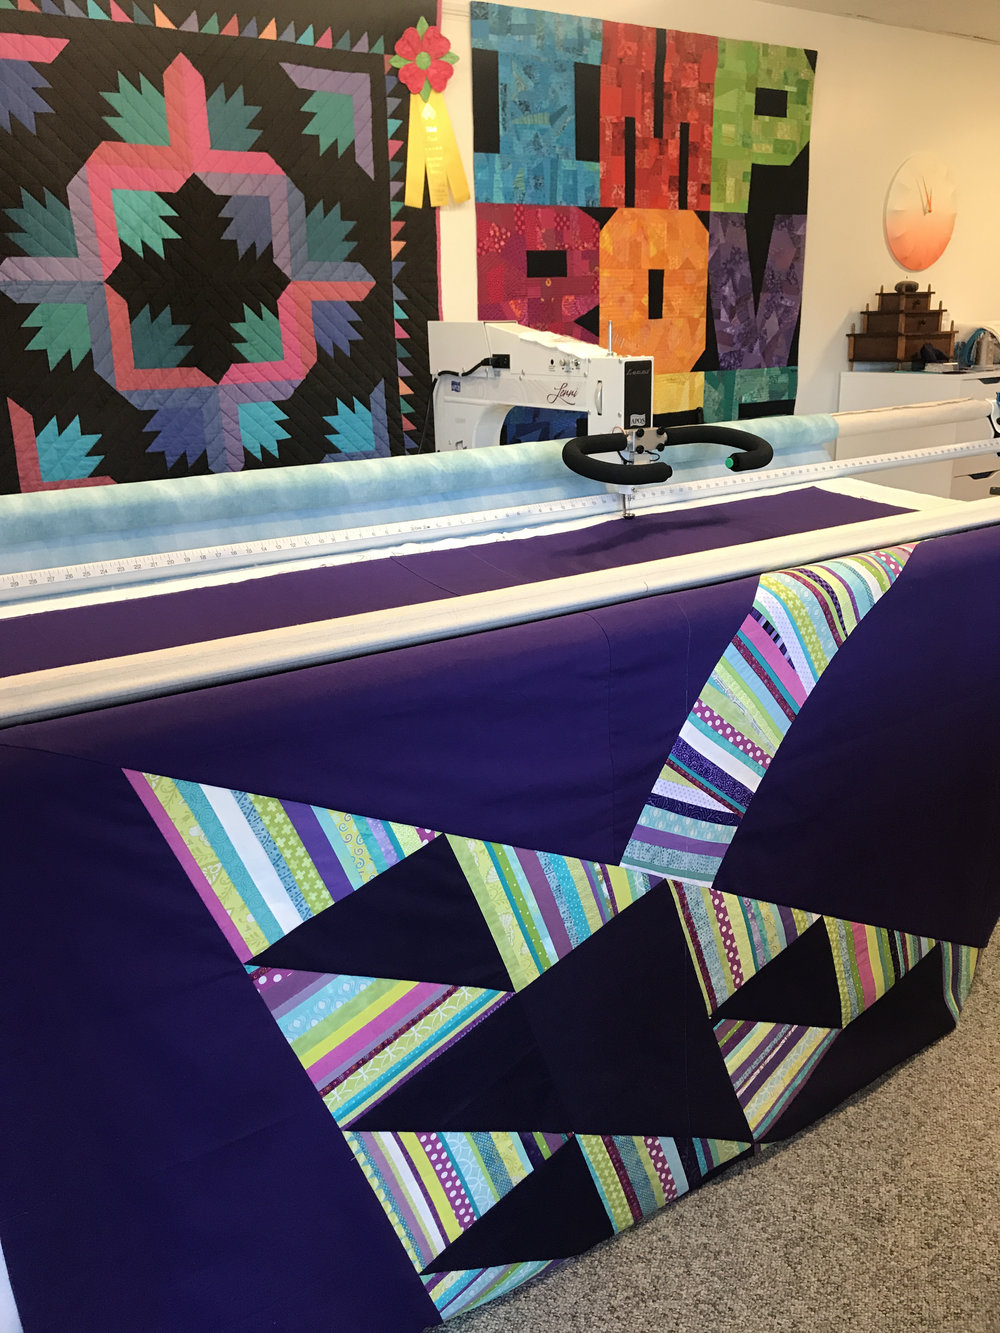 Kelly quilted the top using her longarm machine.